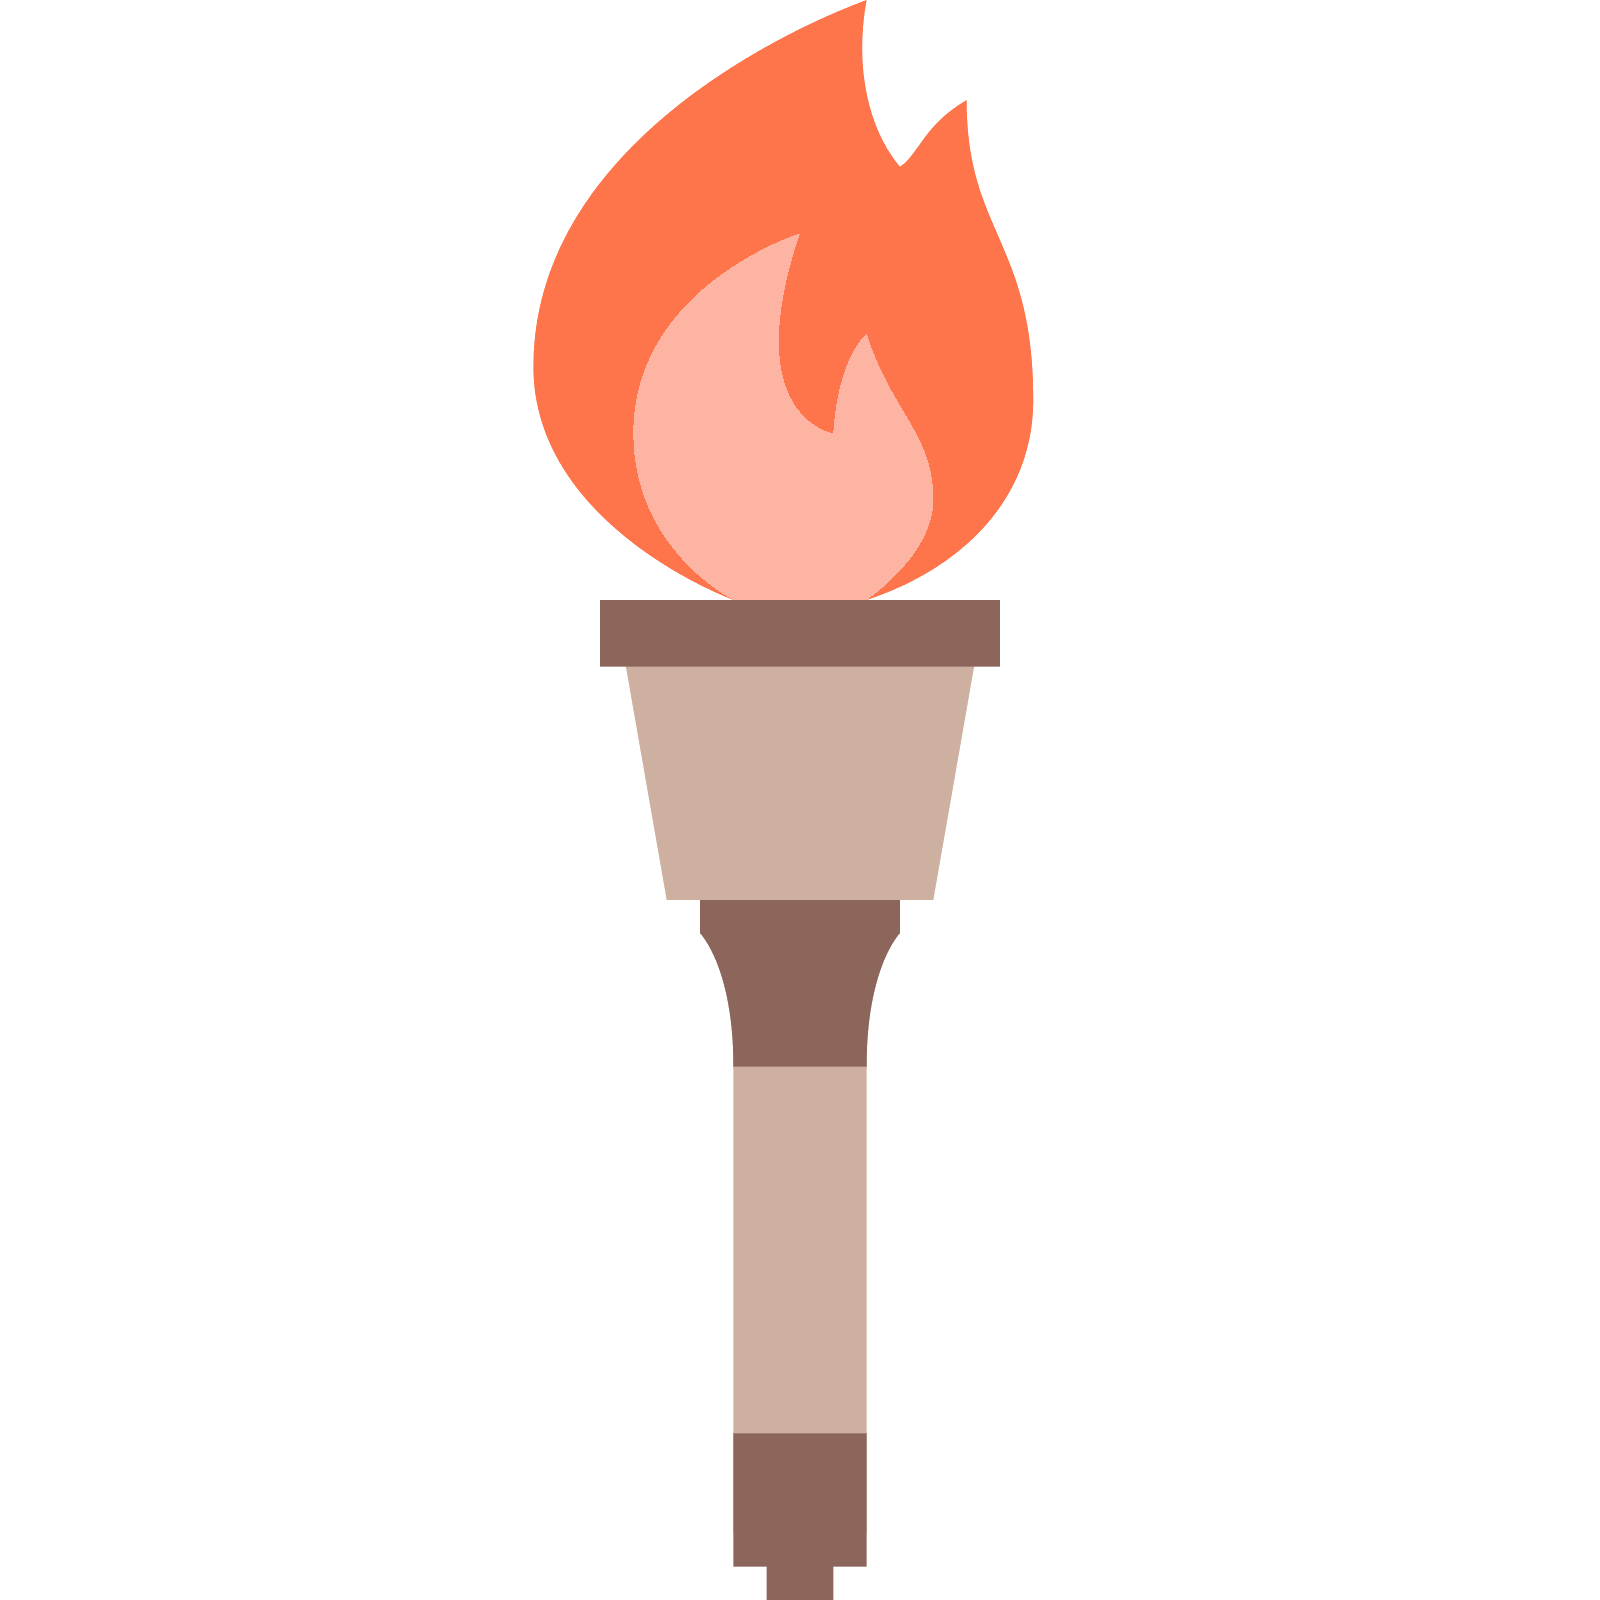 Fire torch png. Olympic icon this logo